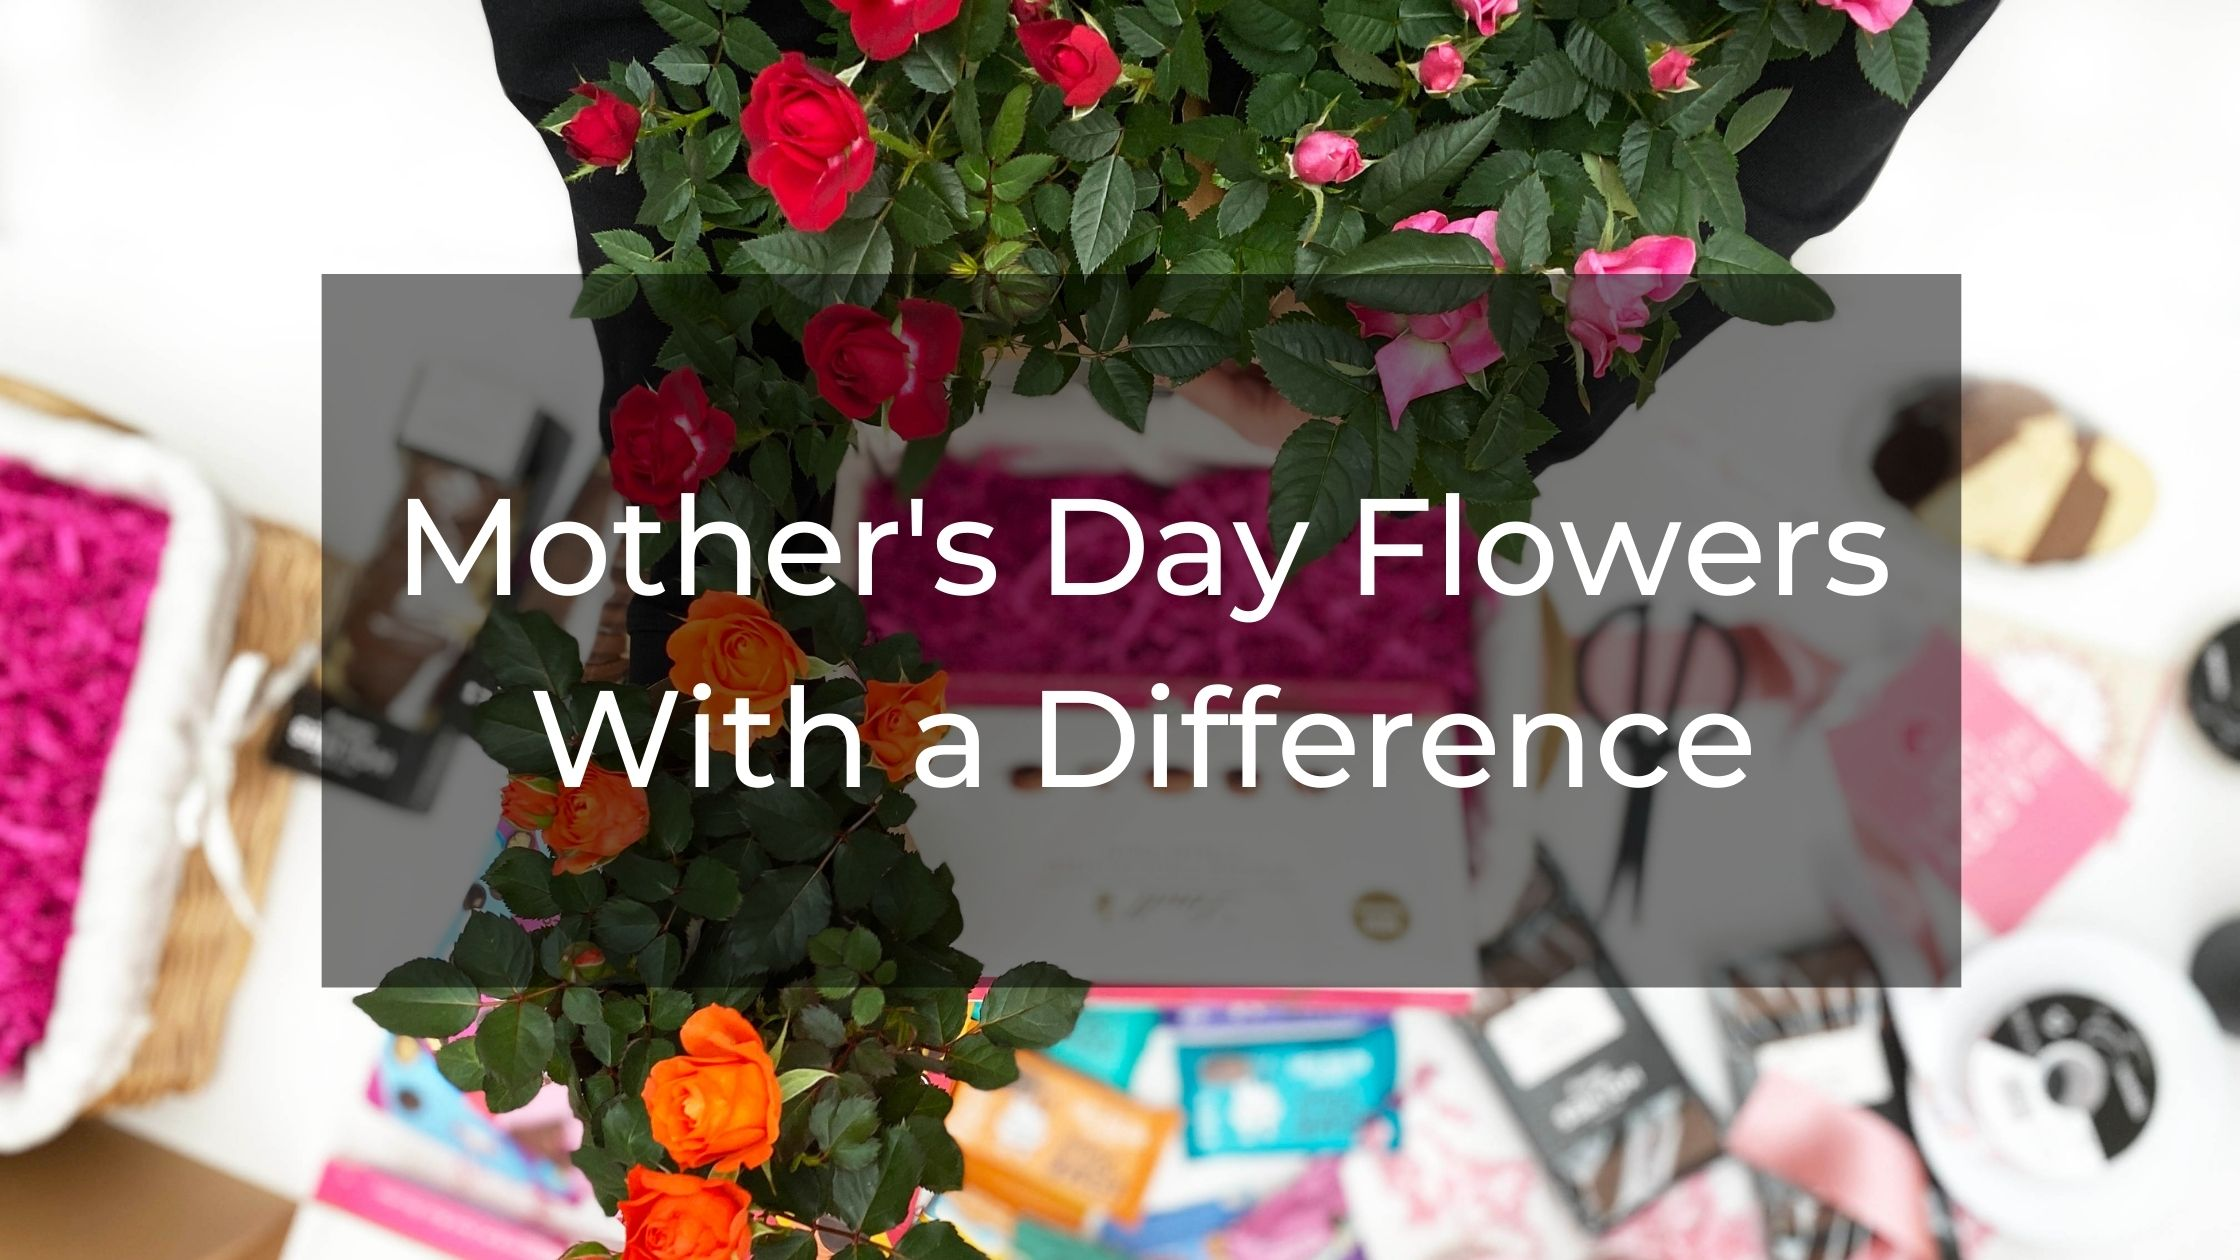 Mother's Day Flowers With a Difference